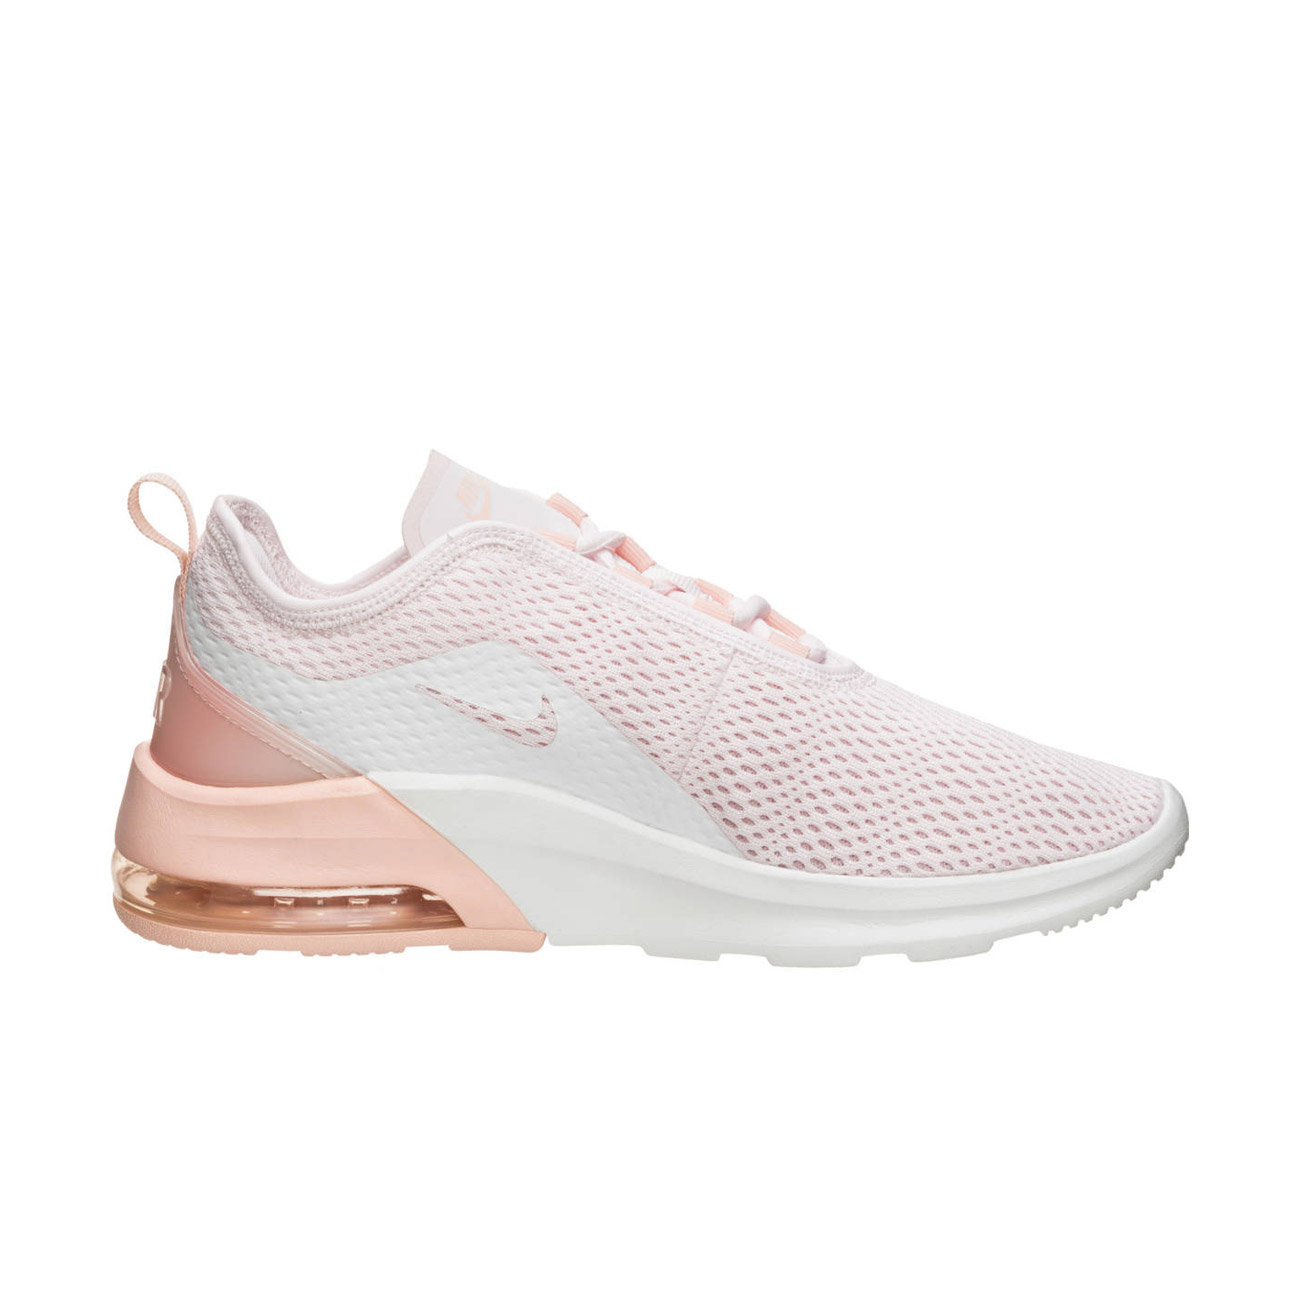 b41c0c9fb0 Nike Women's Air Max Motion 2 Trainers - Pale Pink | Womens Fitness ...